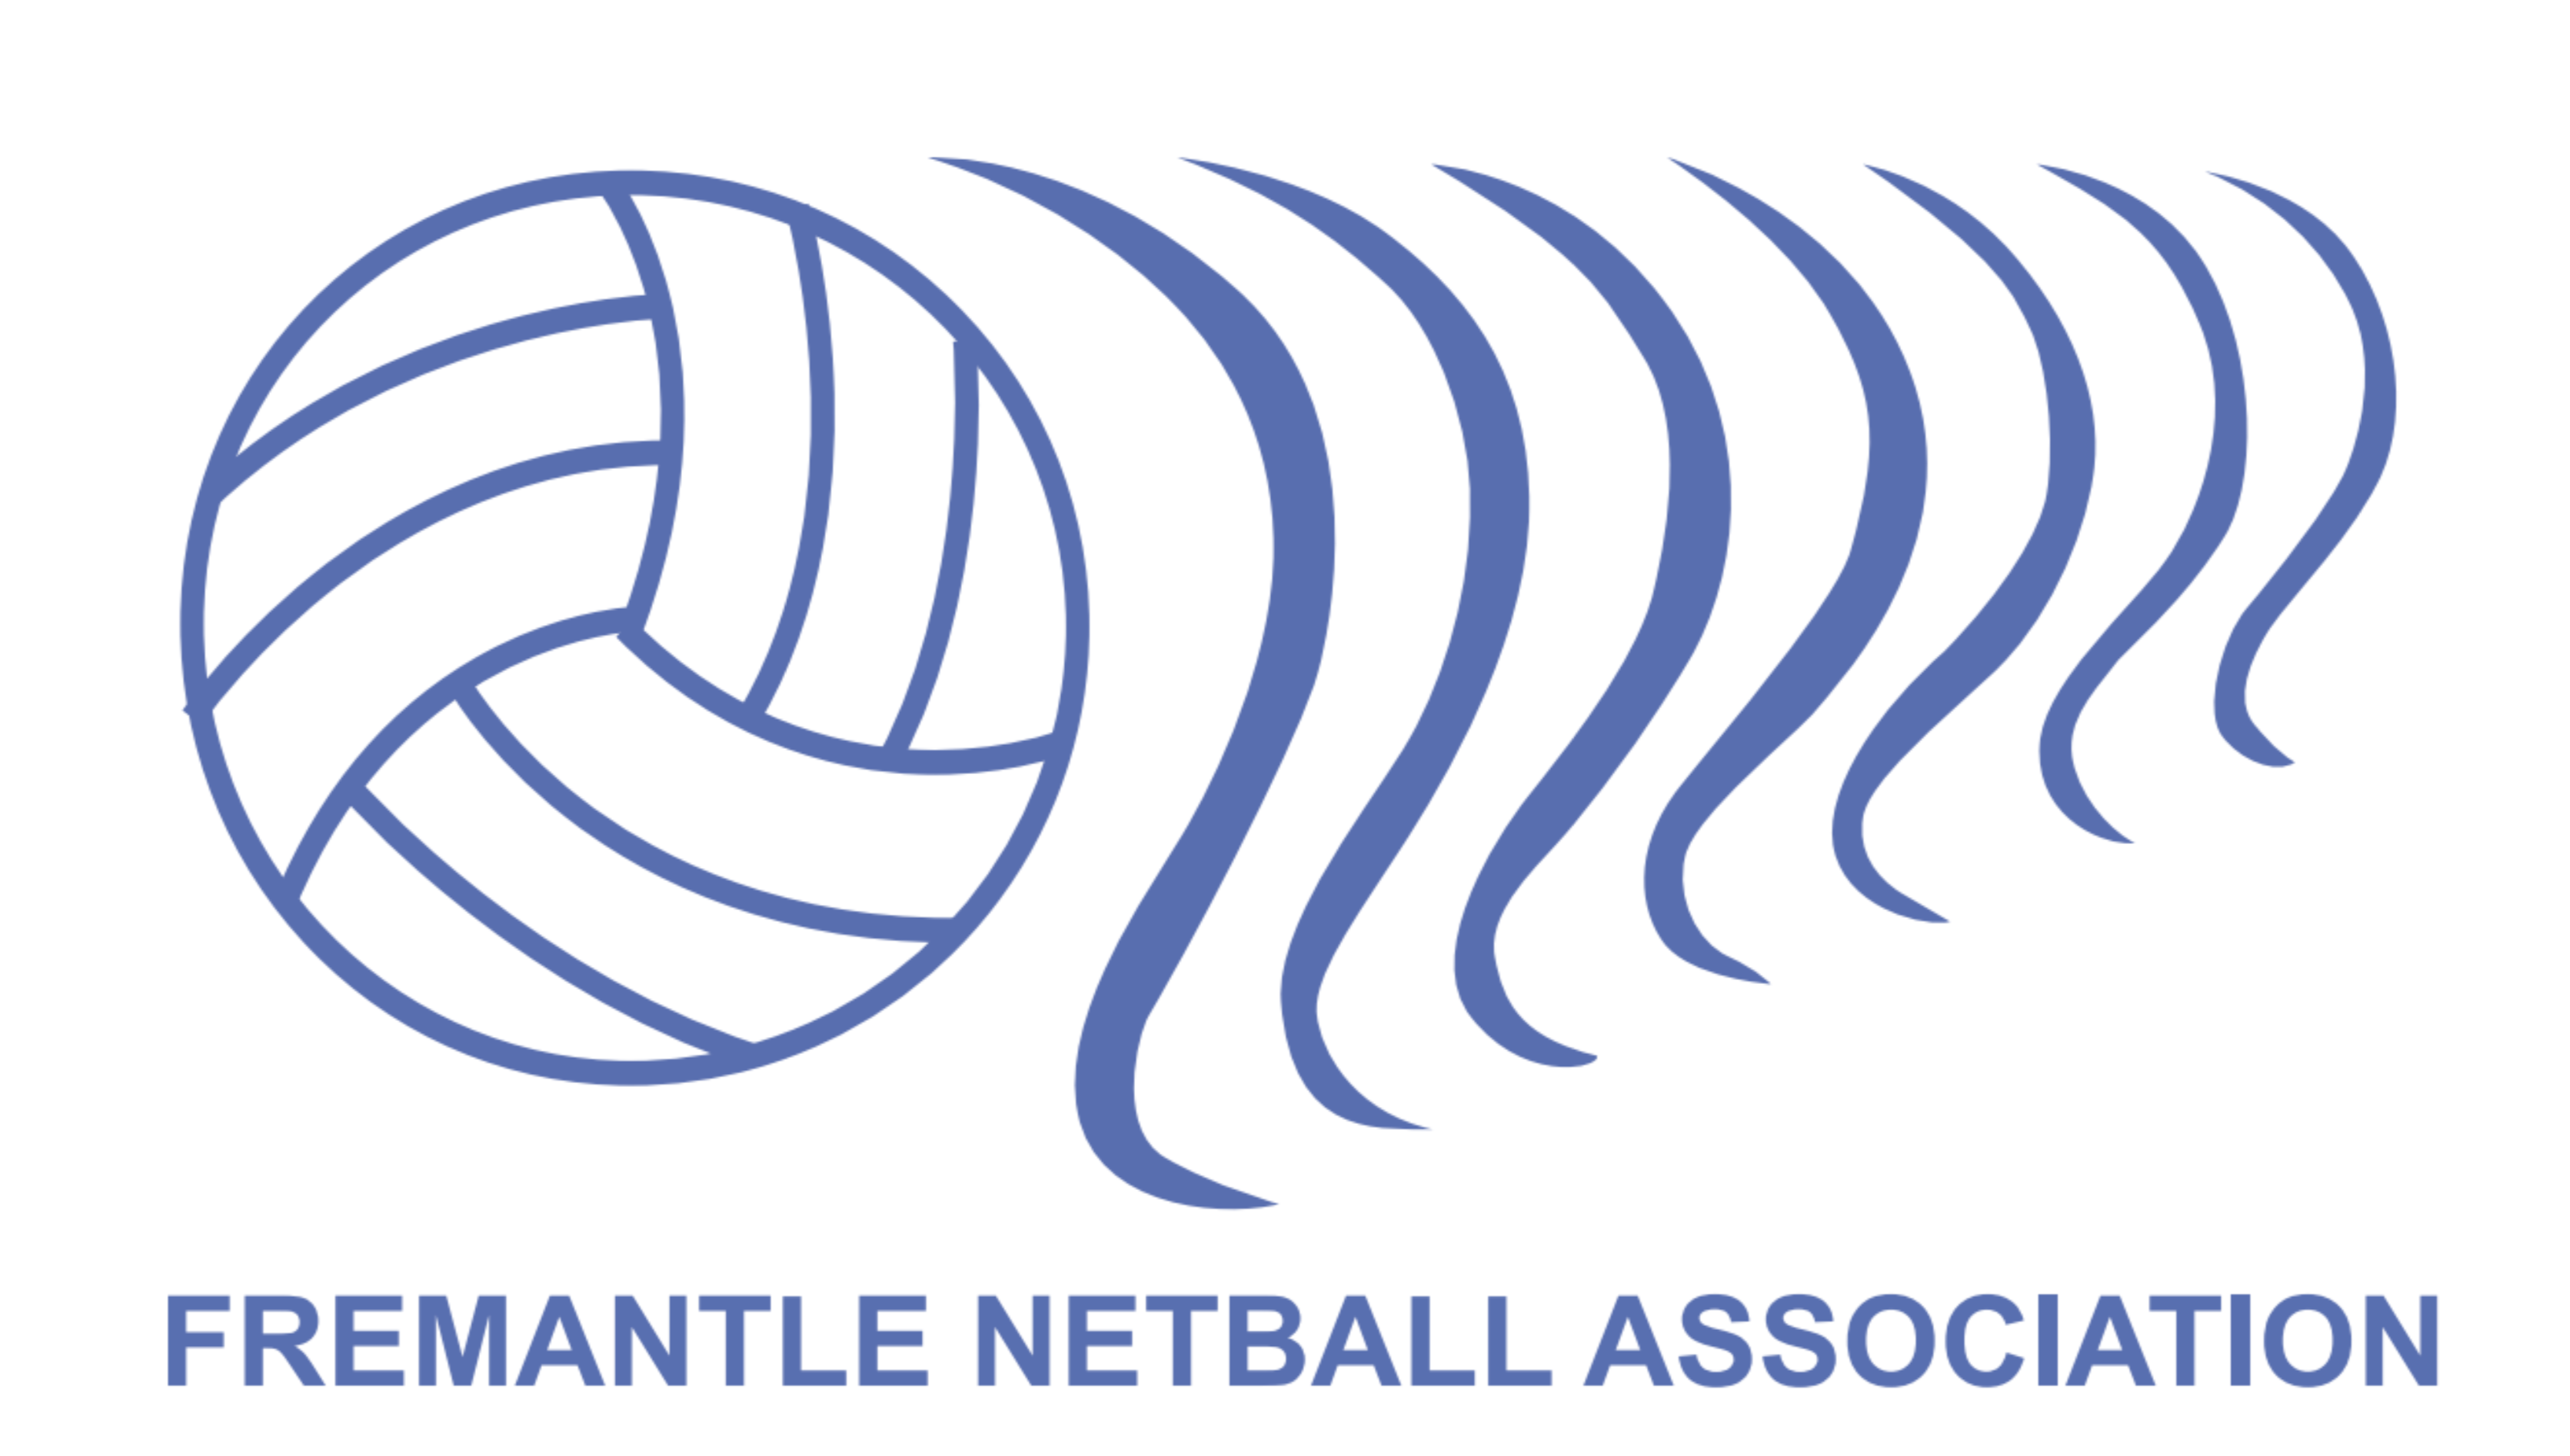 Fremantle Netball Association